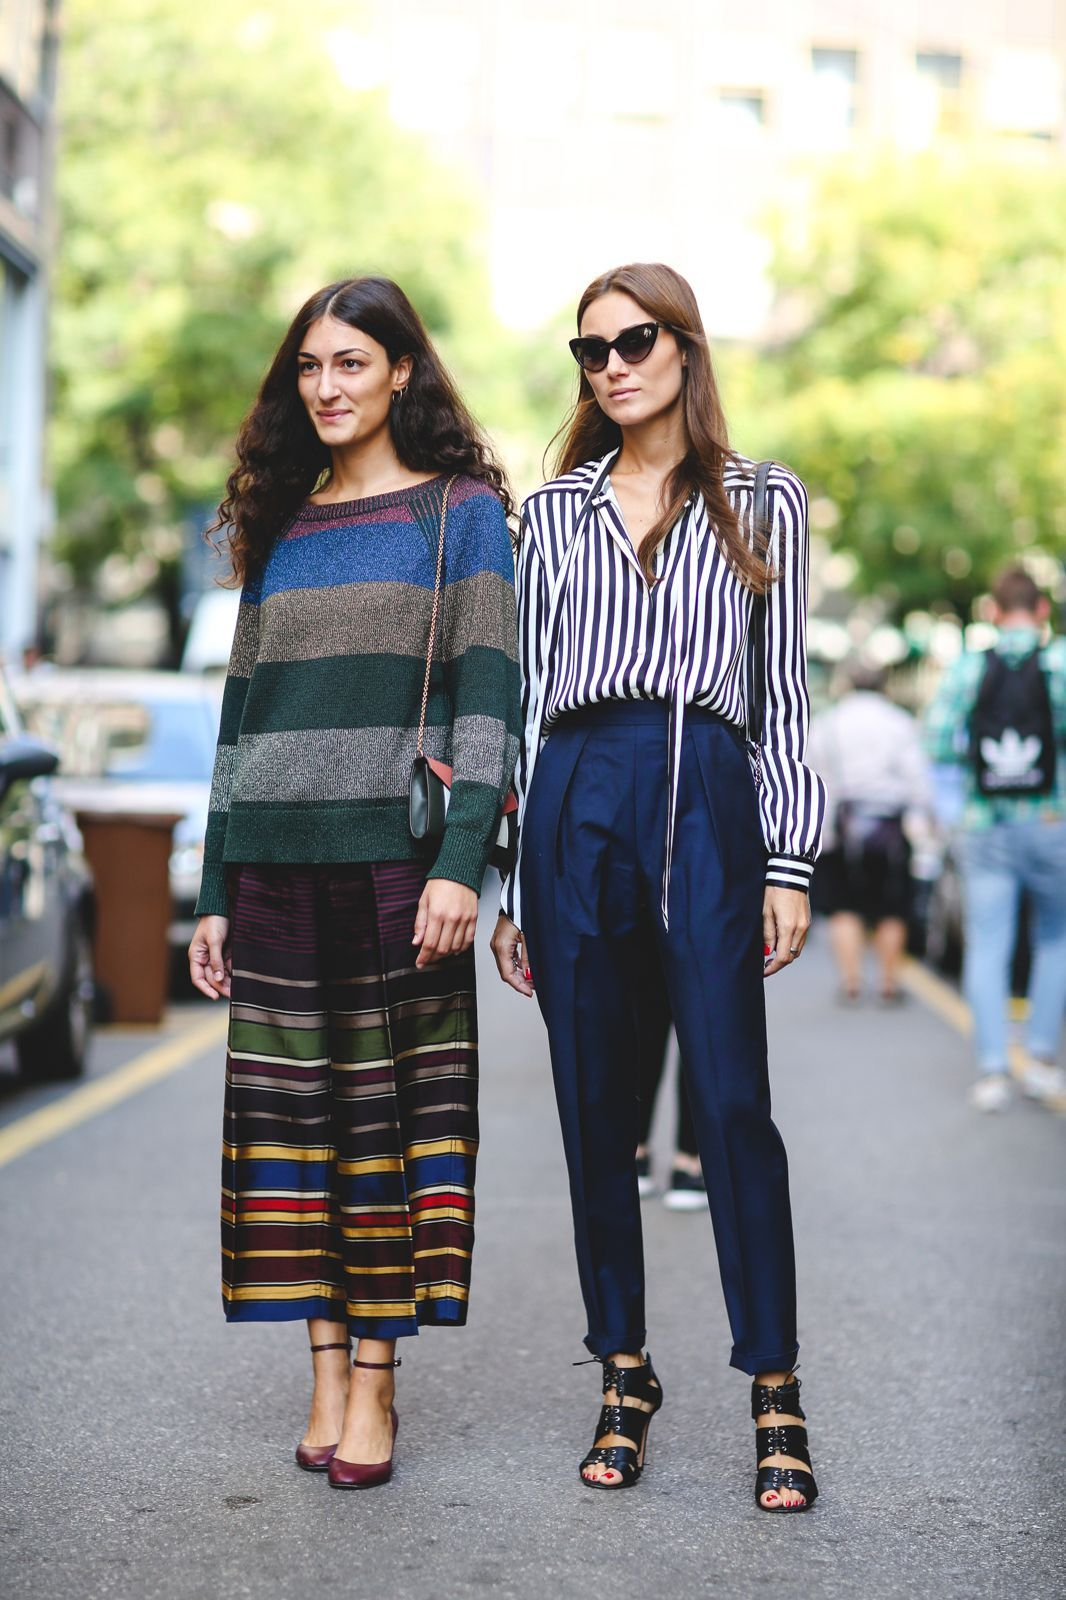 60 Head-To-Toe-Amazing Street Style Snaps From Milan Fashion Week #refinery29  http://www.refinery29.com/2015/09/94857/milan-fashion-week-spring-2016-street-style-pictures#slide-19  Stripes in every direction....